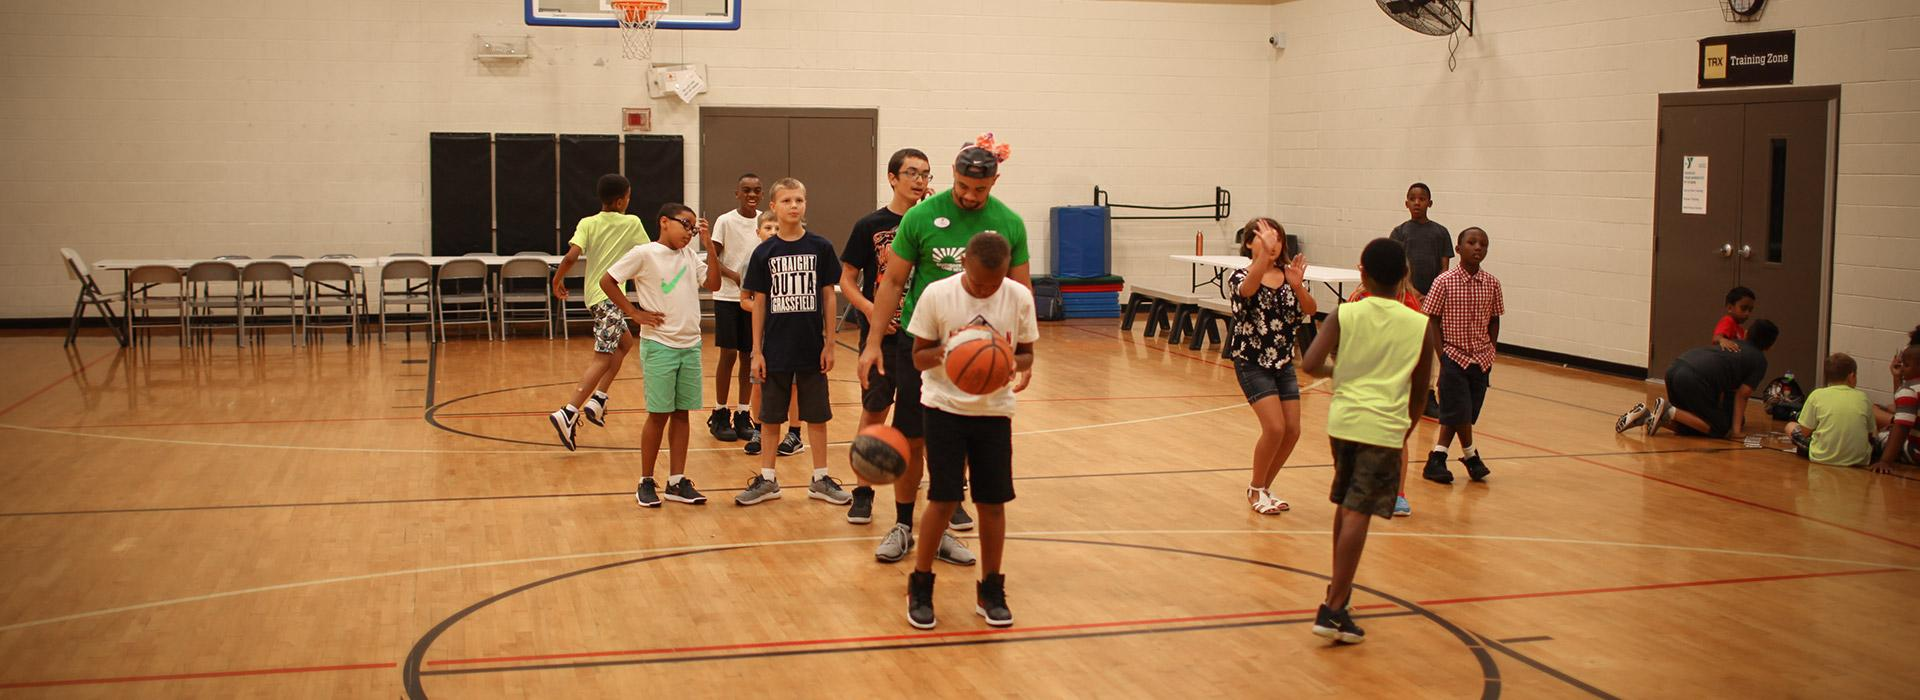 Greenbrier Family YMCA kids playing basketball